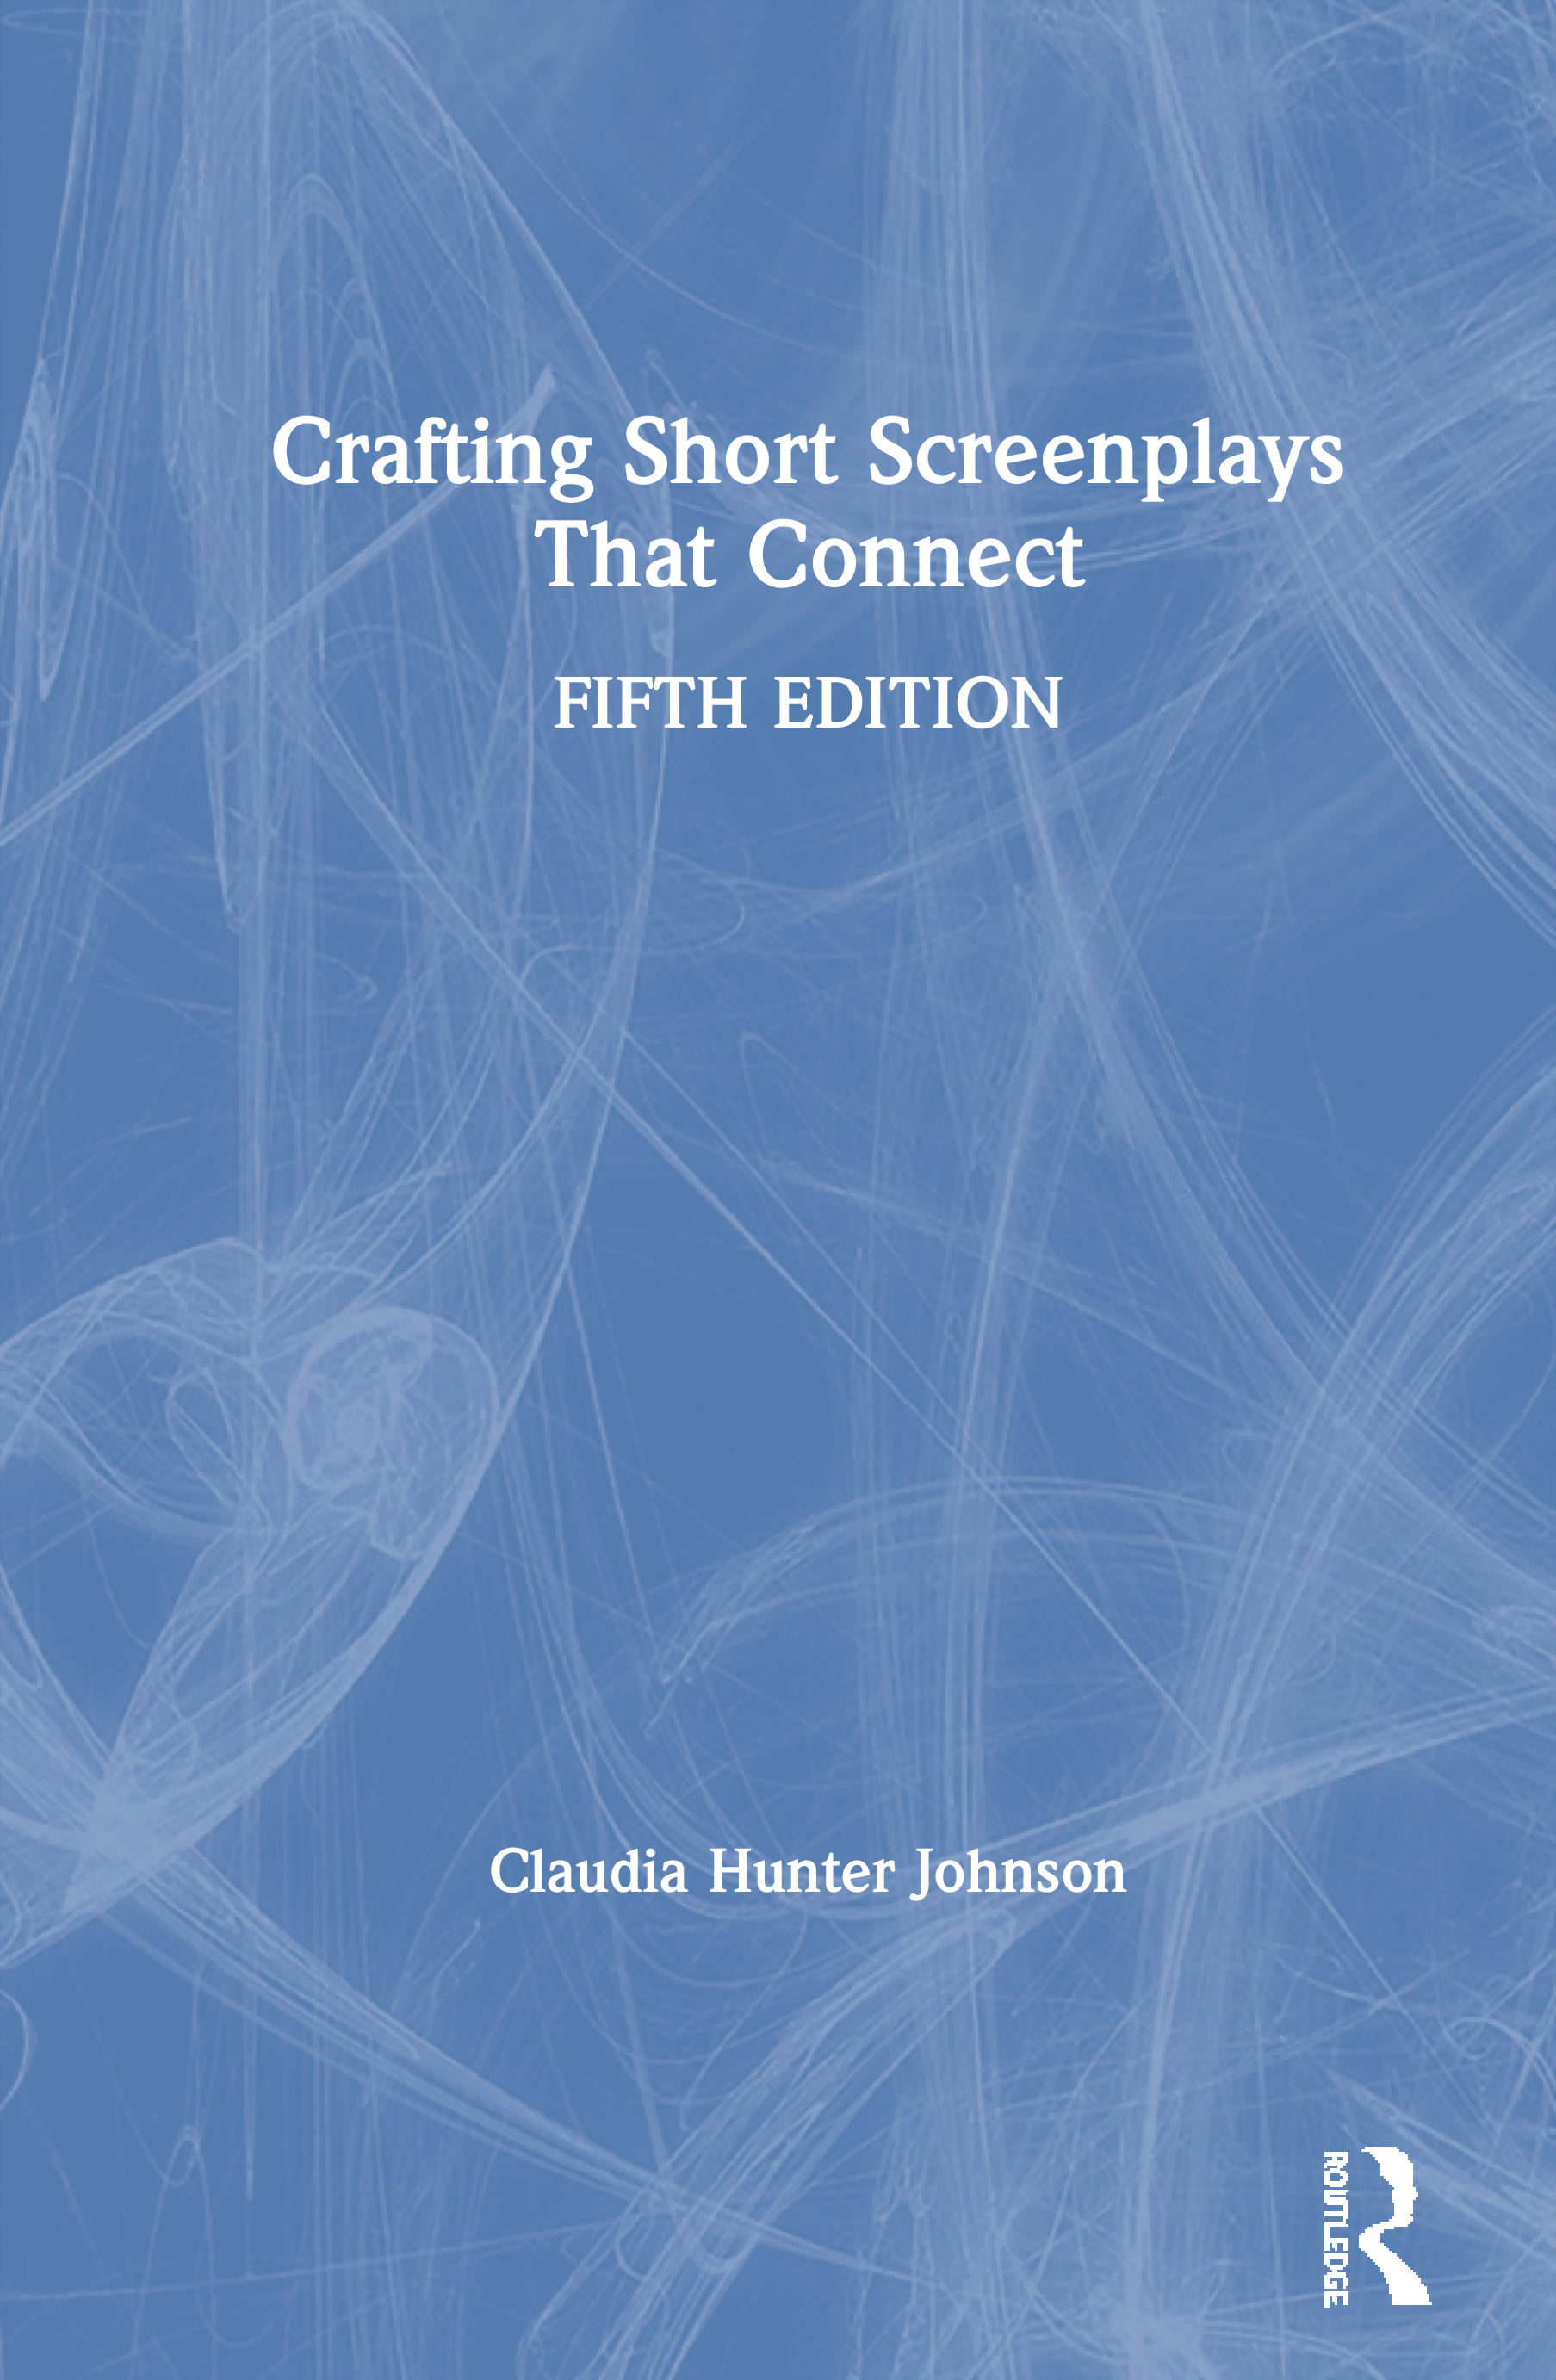 Crafting Short Screenplays That Connect book cover